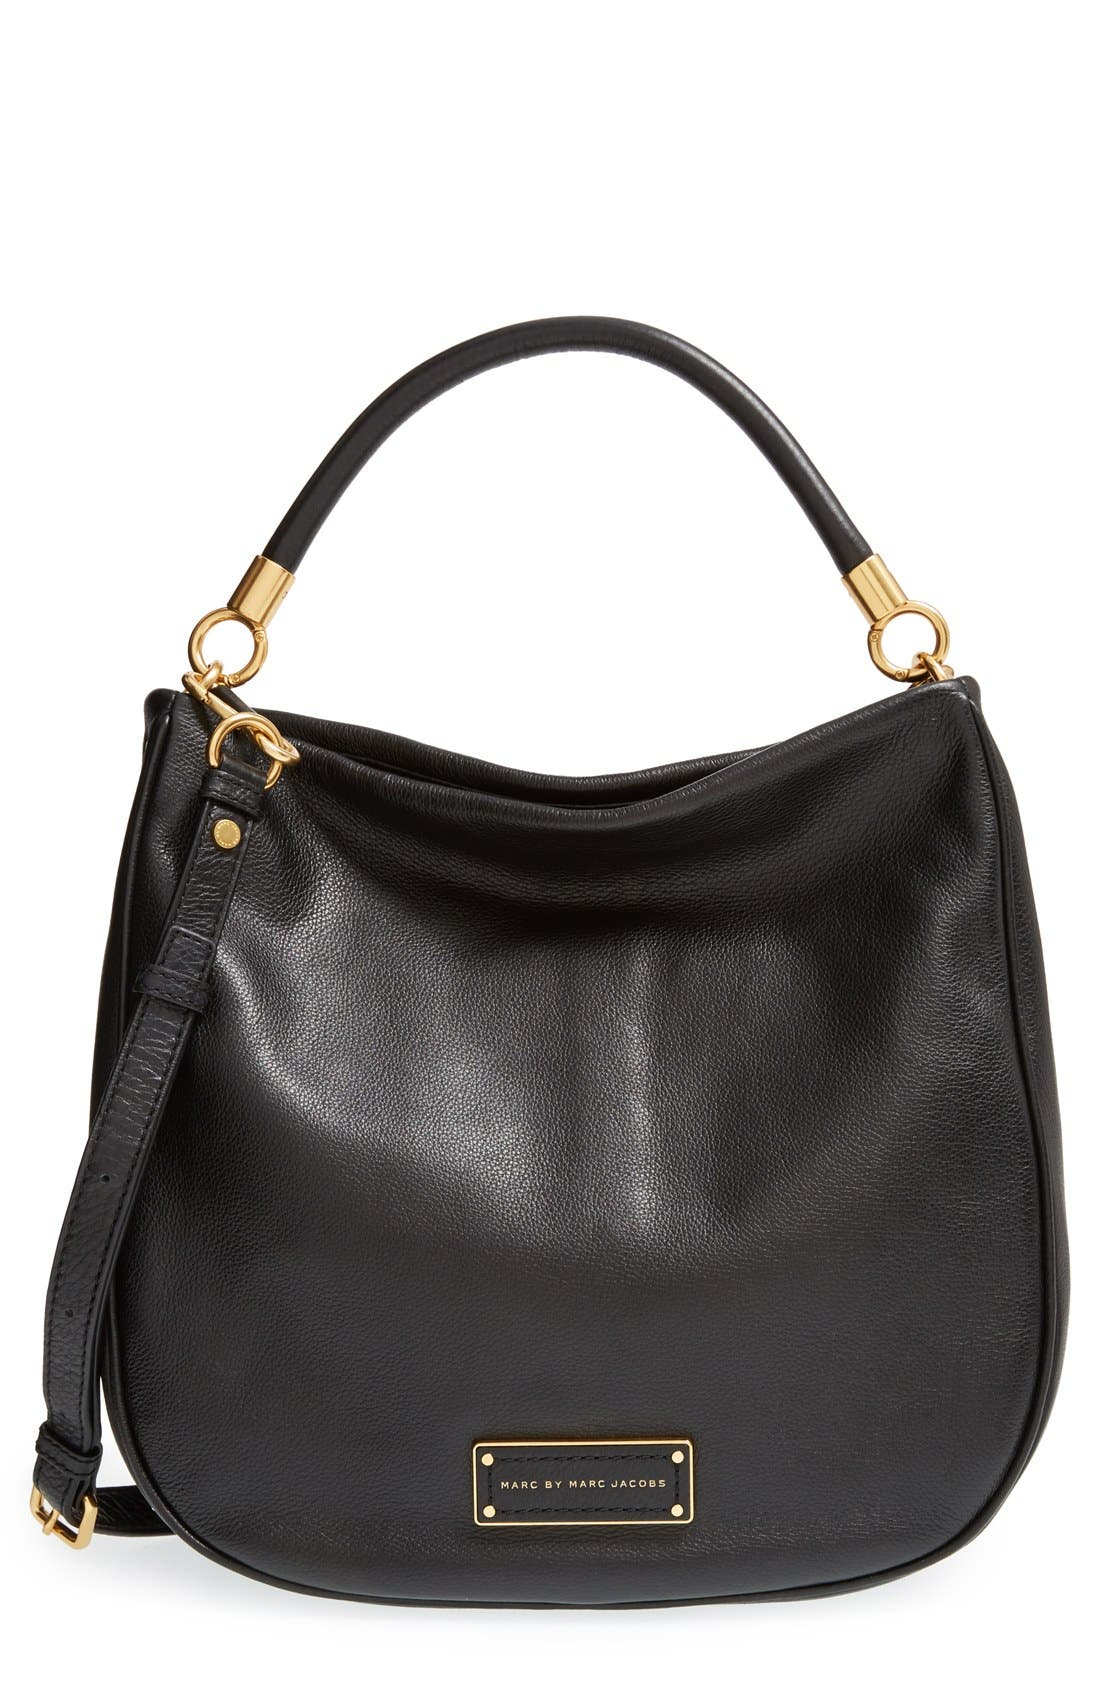 MARC BY MARC JACOBS 'Too Hot to Handle' Hobo, Main, color, 001